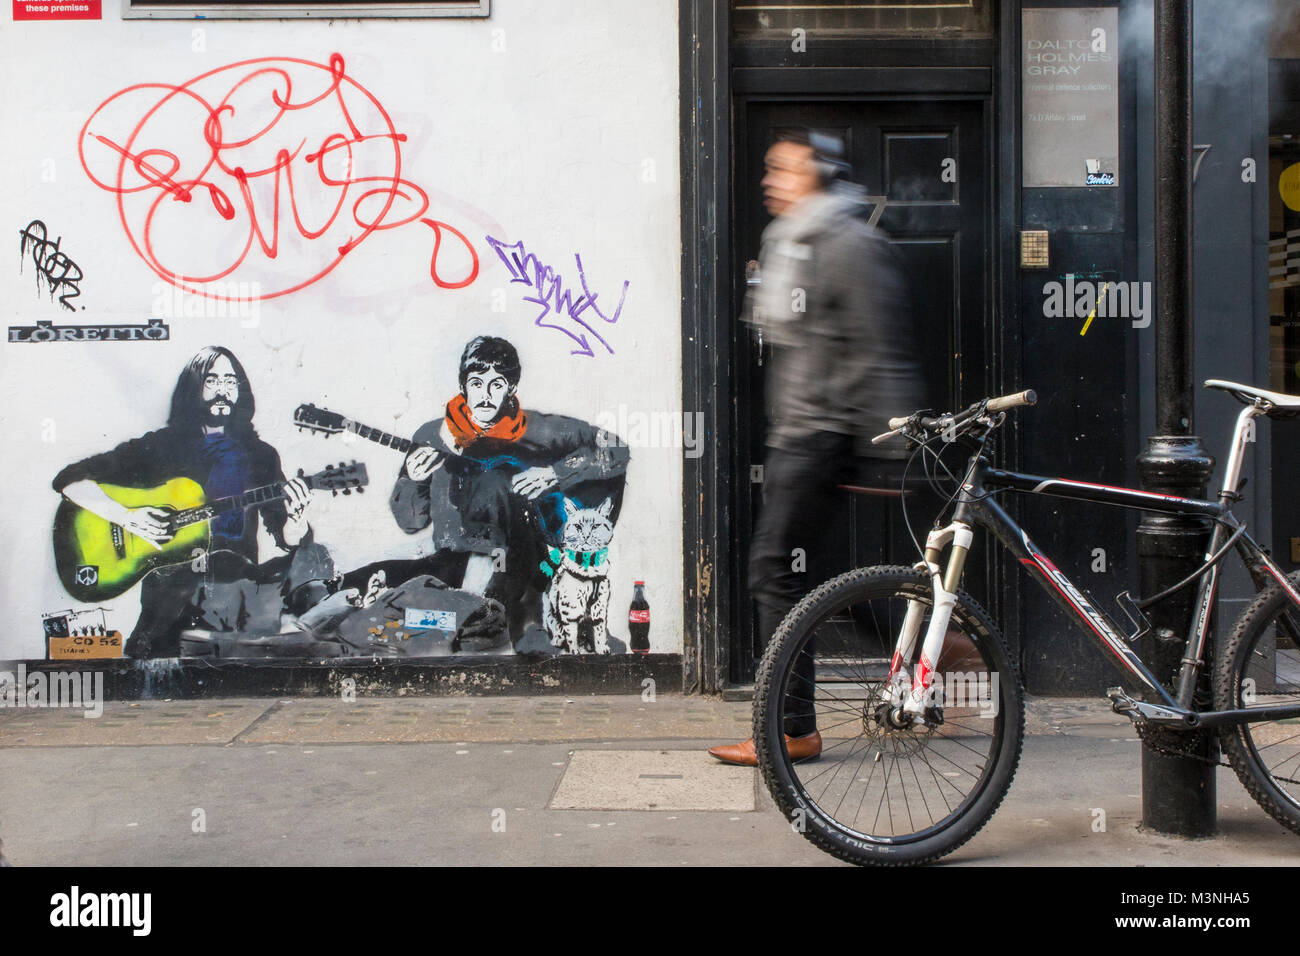 The spirit of John Lennon and Paul McCartney lives on in Soho - Stock Image